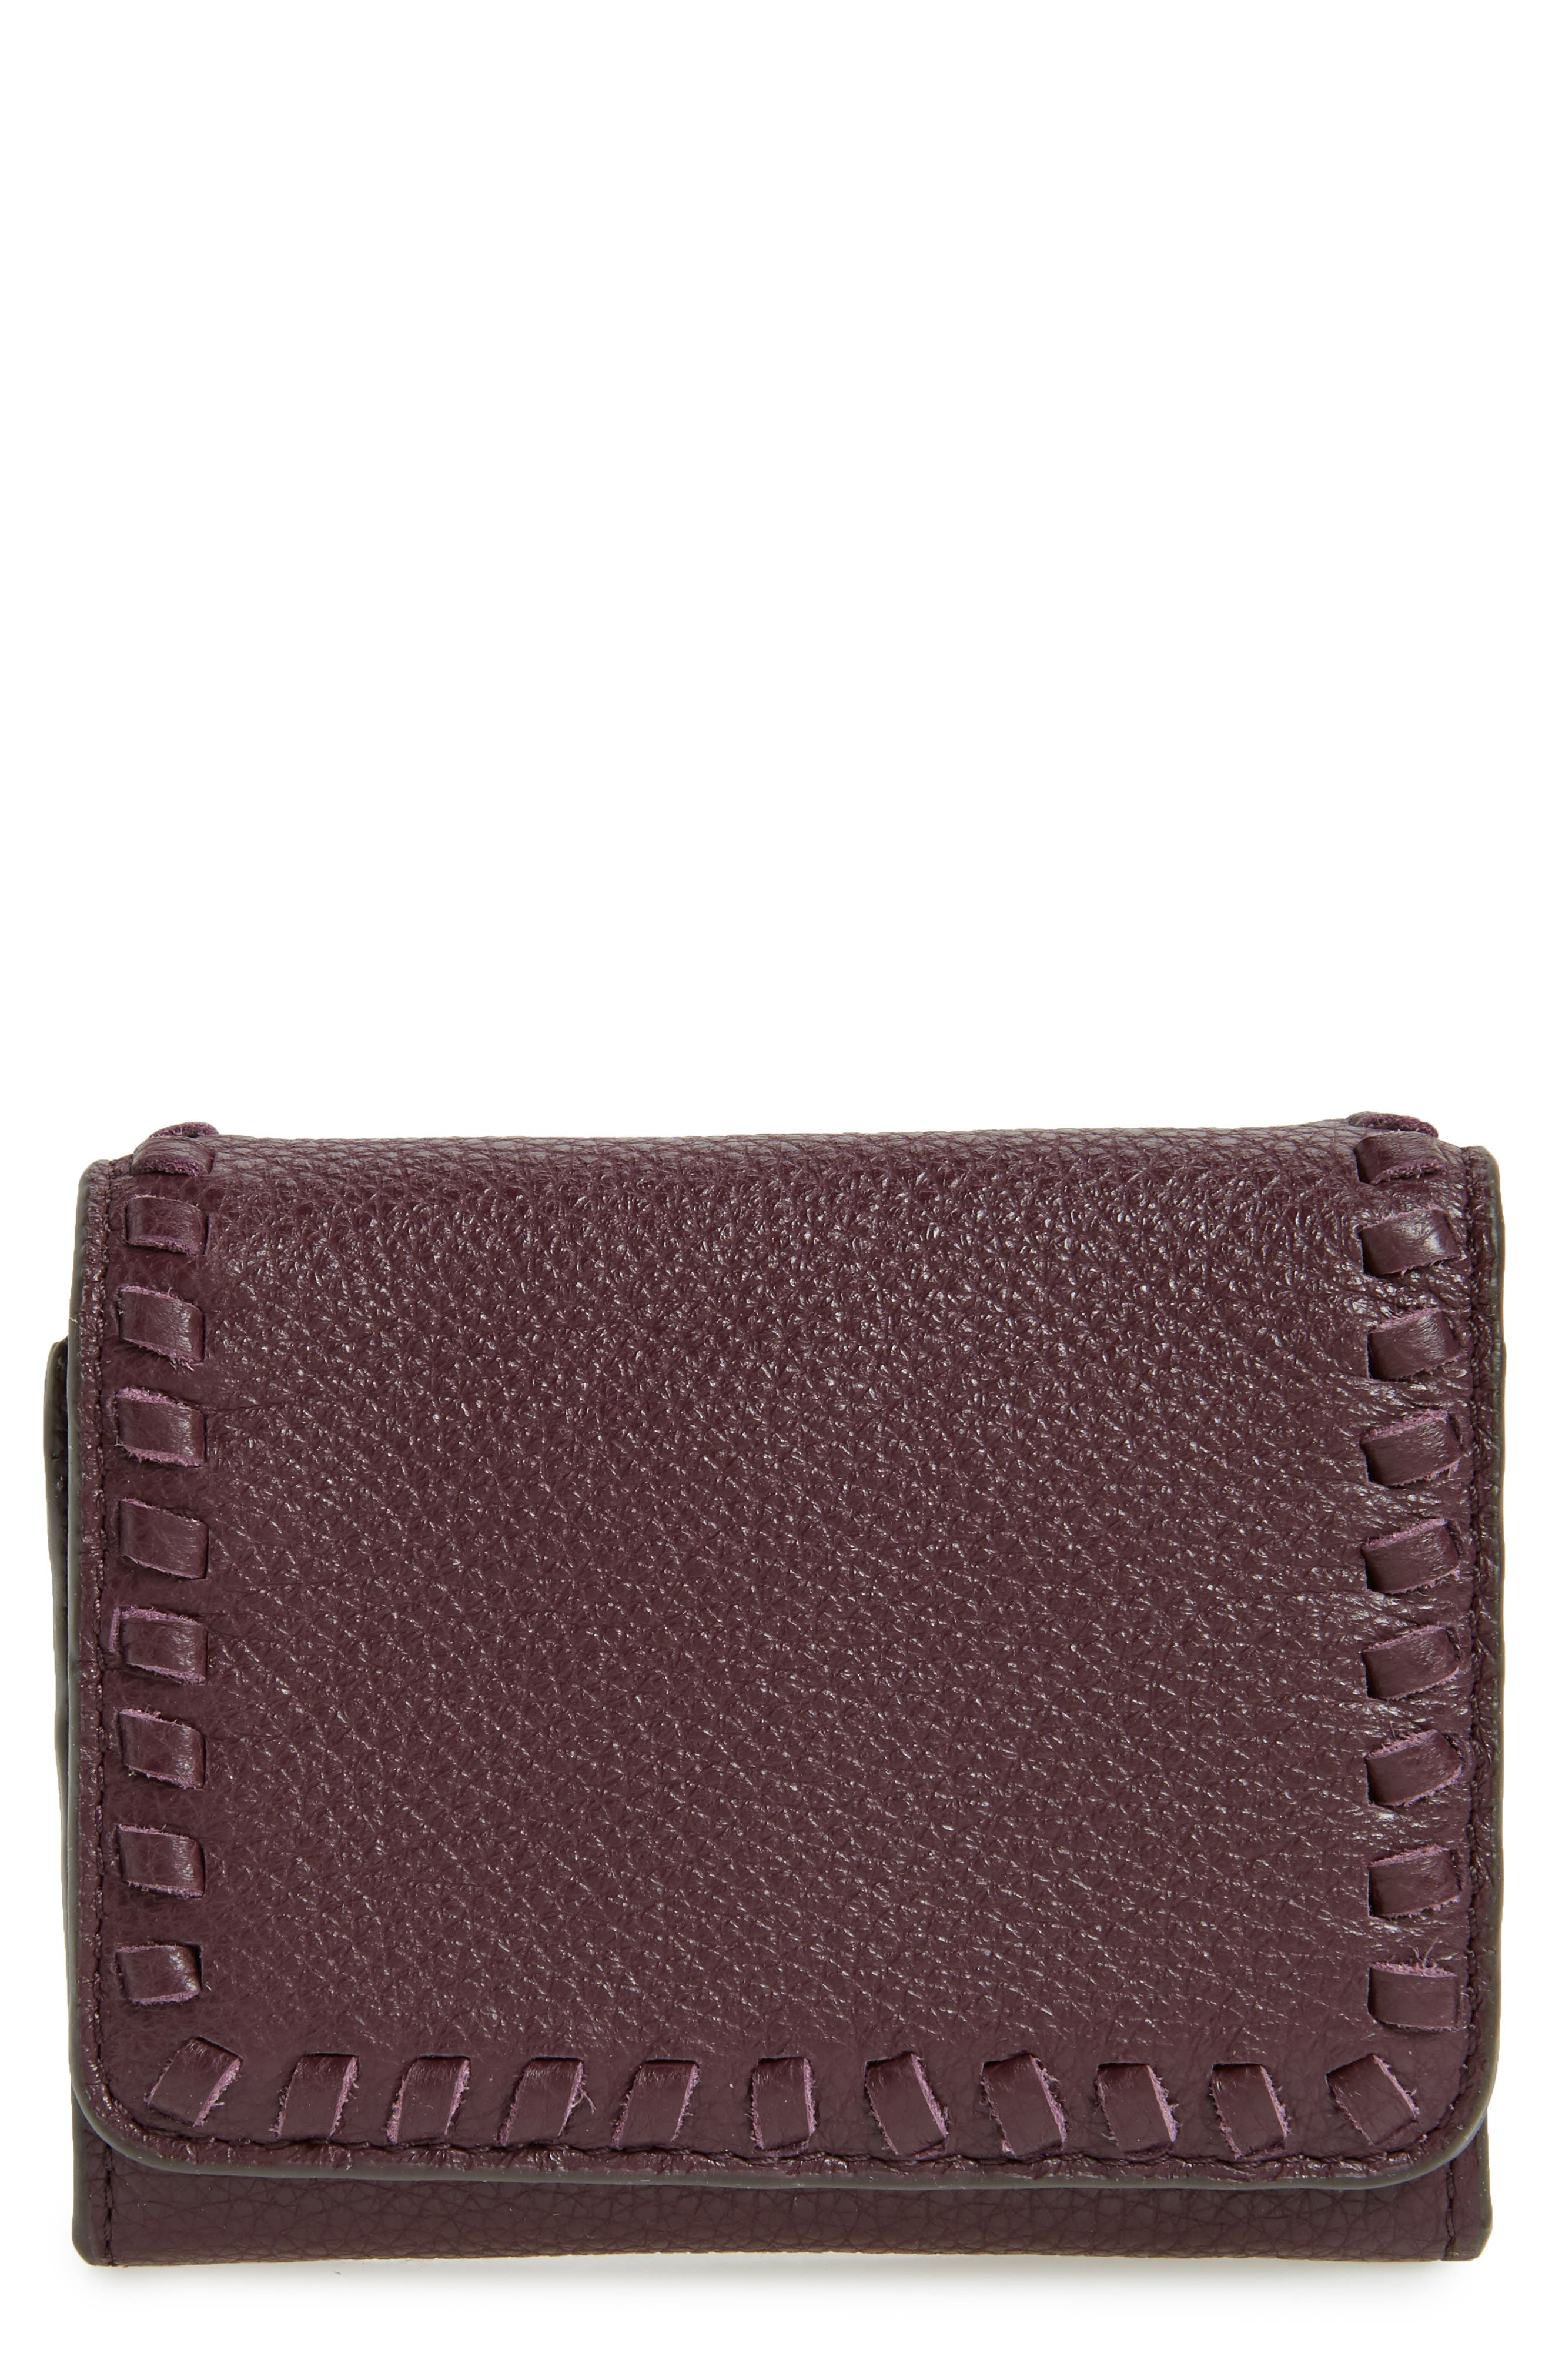 Mini Vanity Leather Wallet,                         Main,                         color, 610